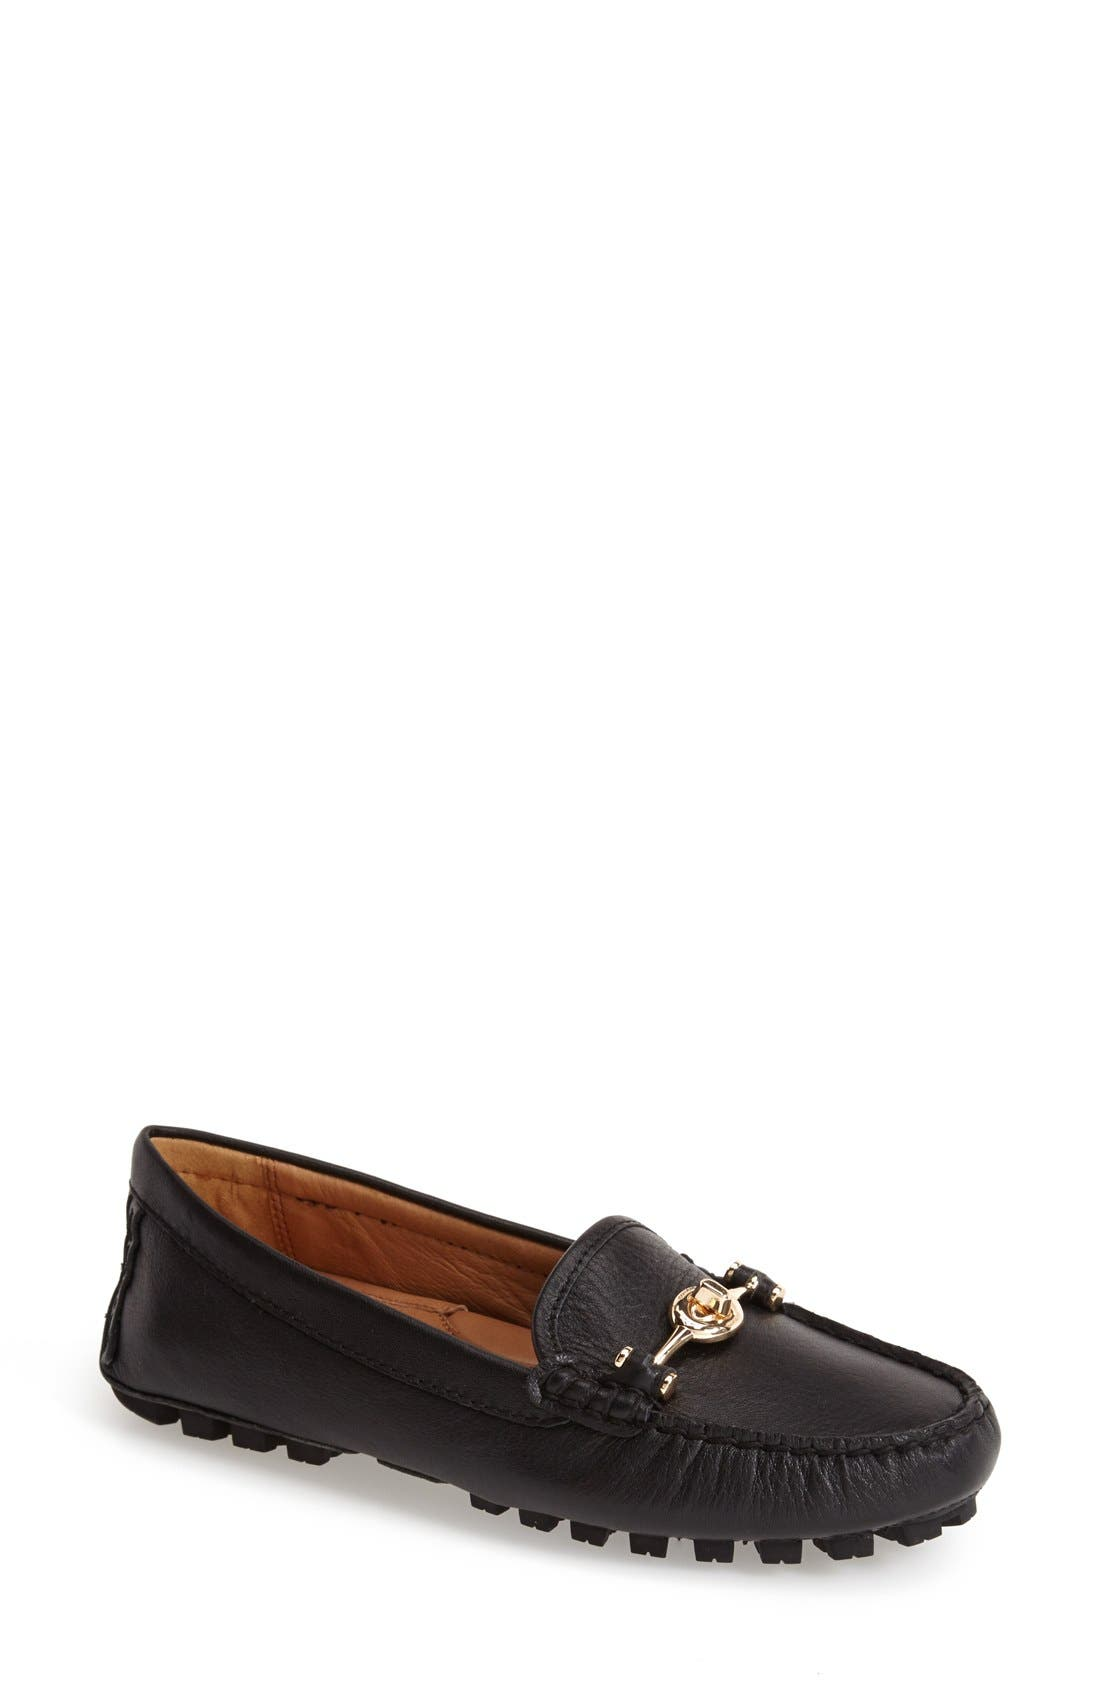 Alternate Image 1 Selected - COACH 'Arlene' Loafer (Women)